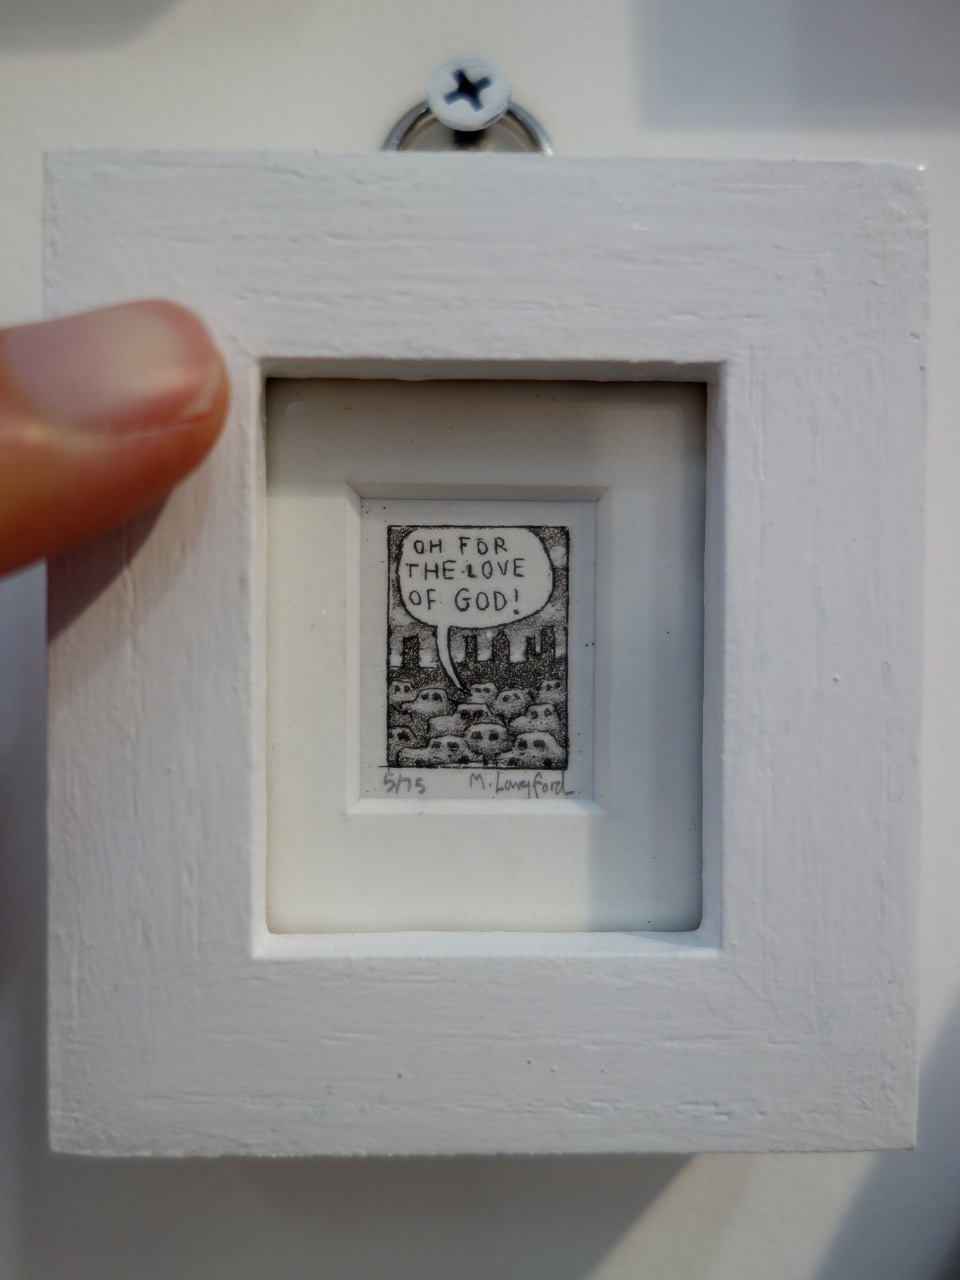 Martin Langford, Title unknown, Etching. For Arts Sake (Greater London)